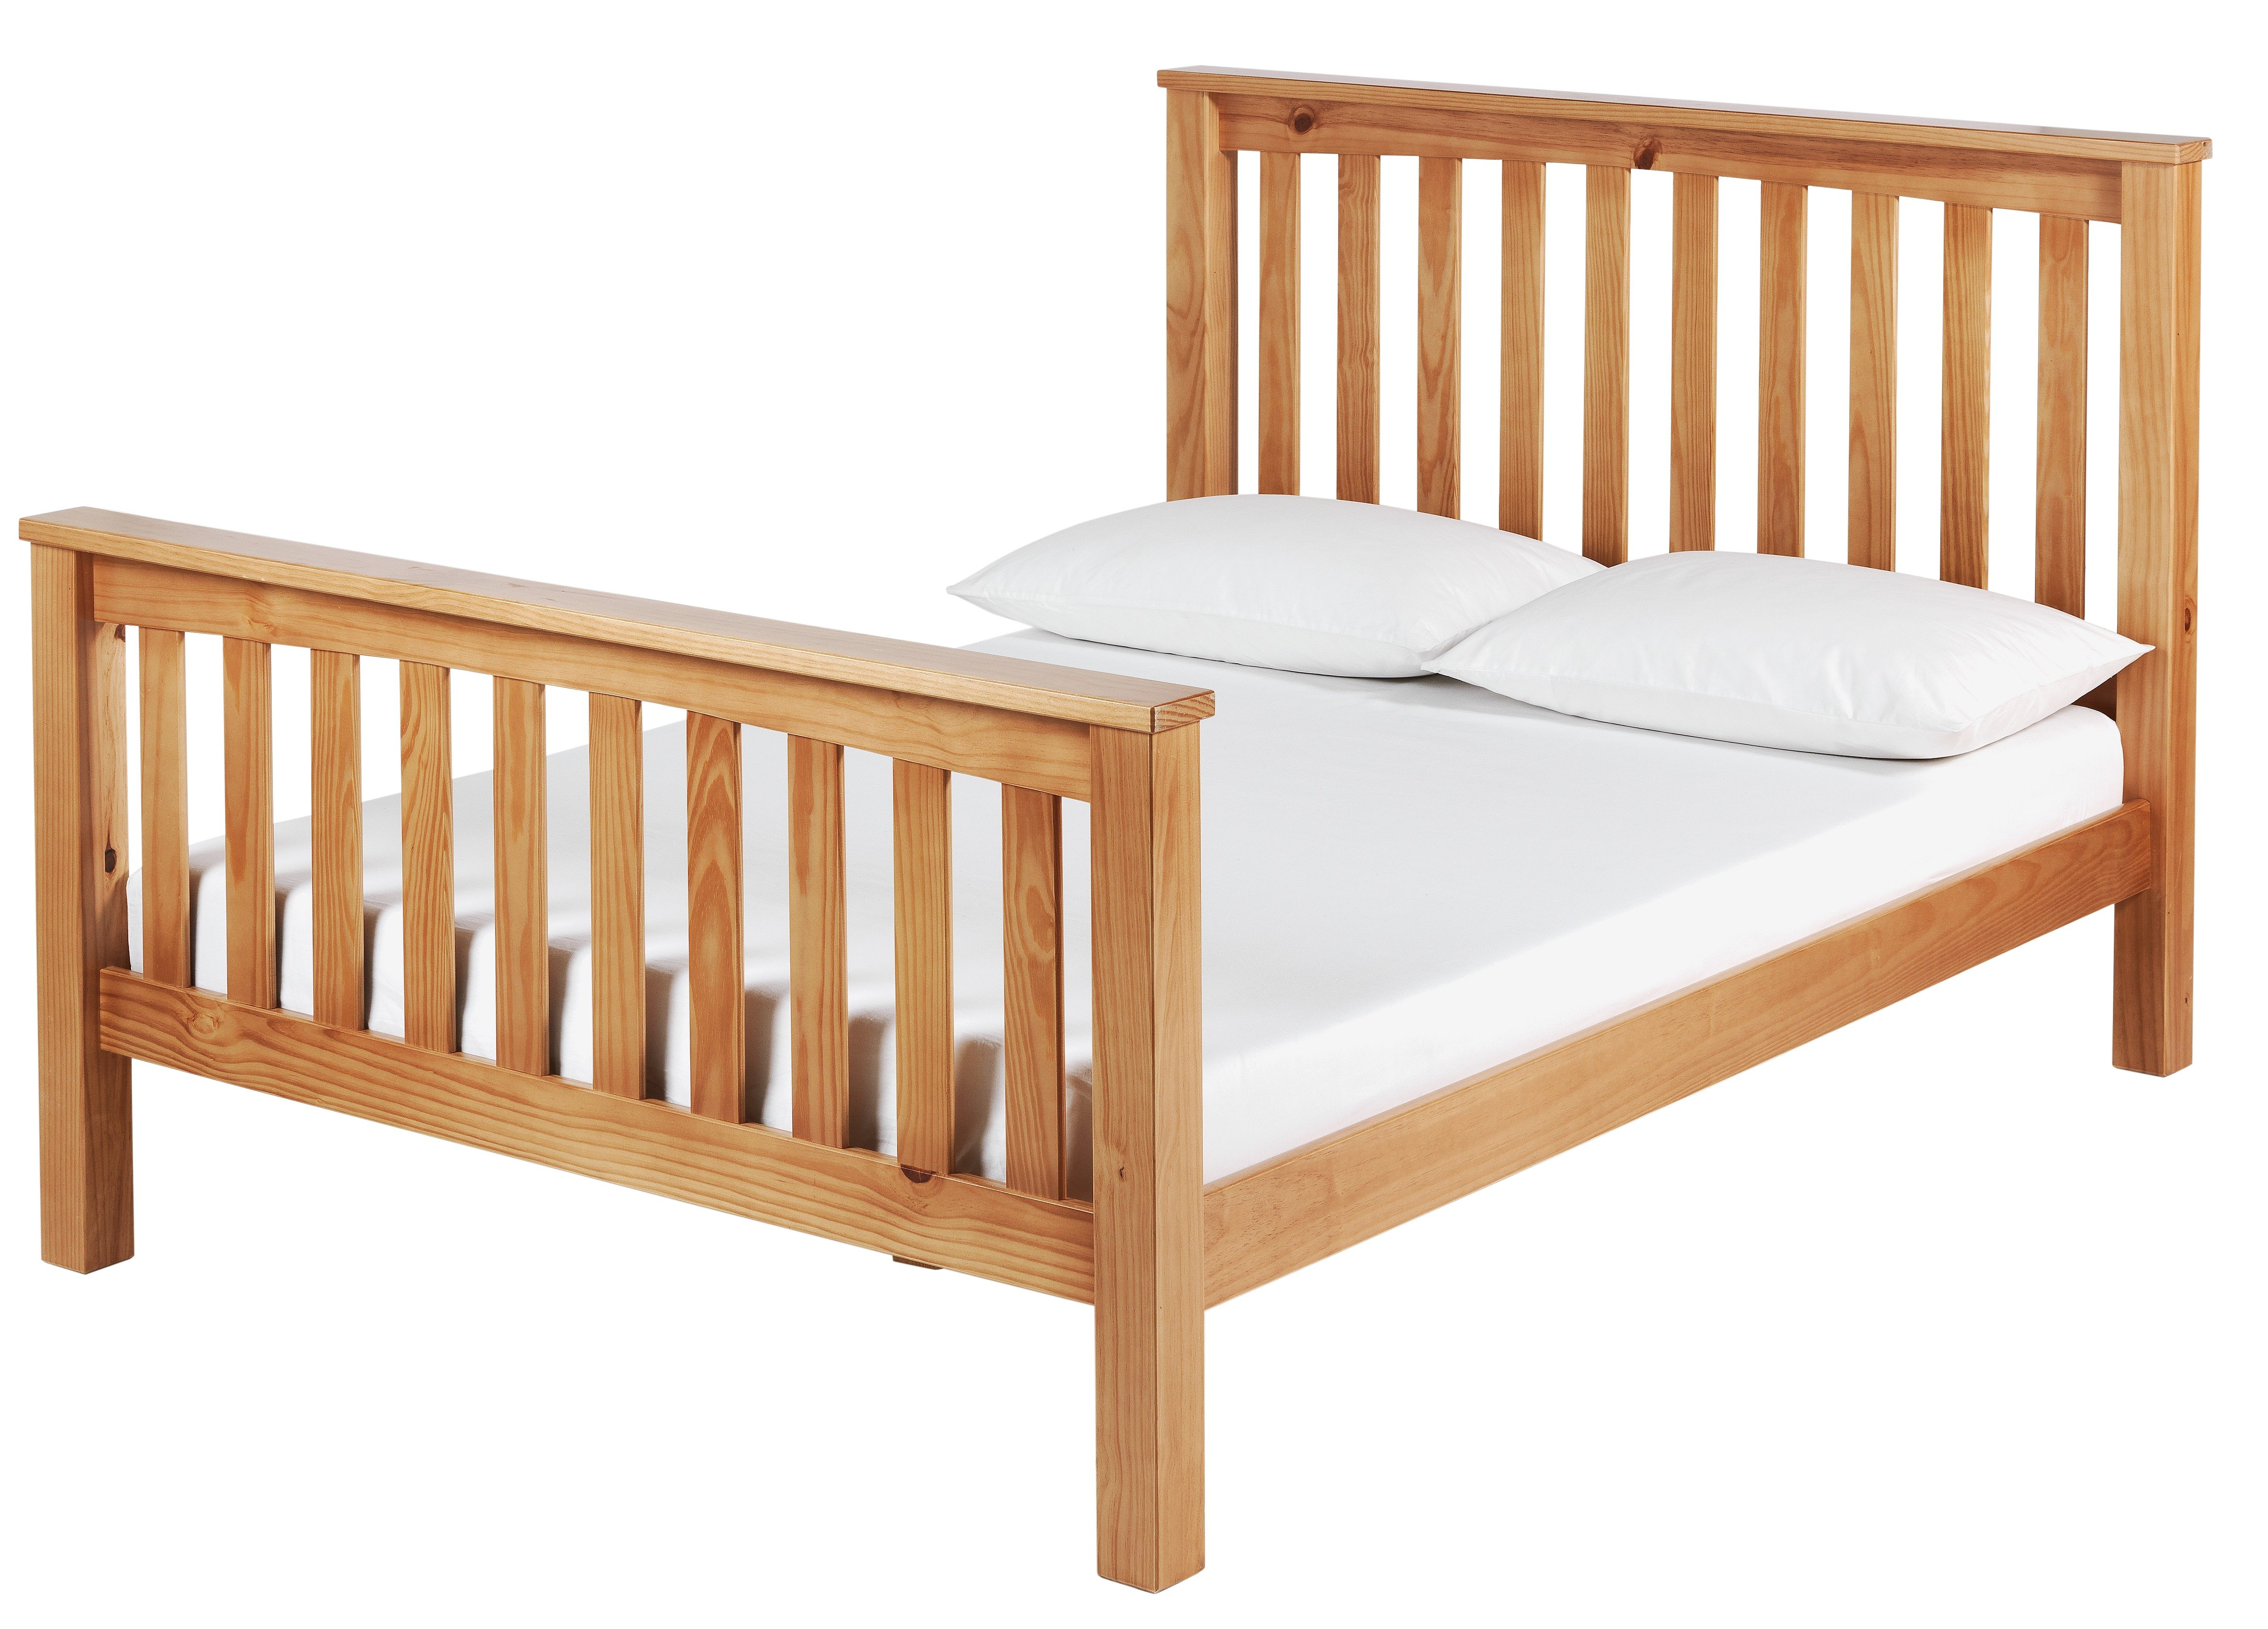 Offer offers trending latest deals from uk retailers for Bed frame deals